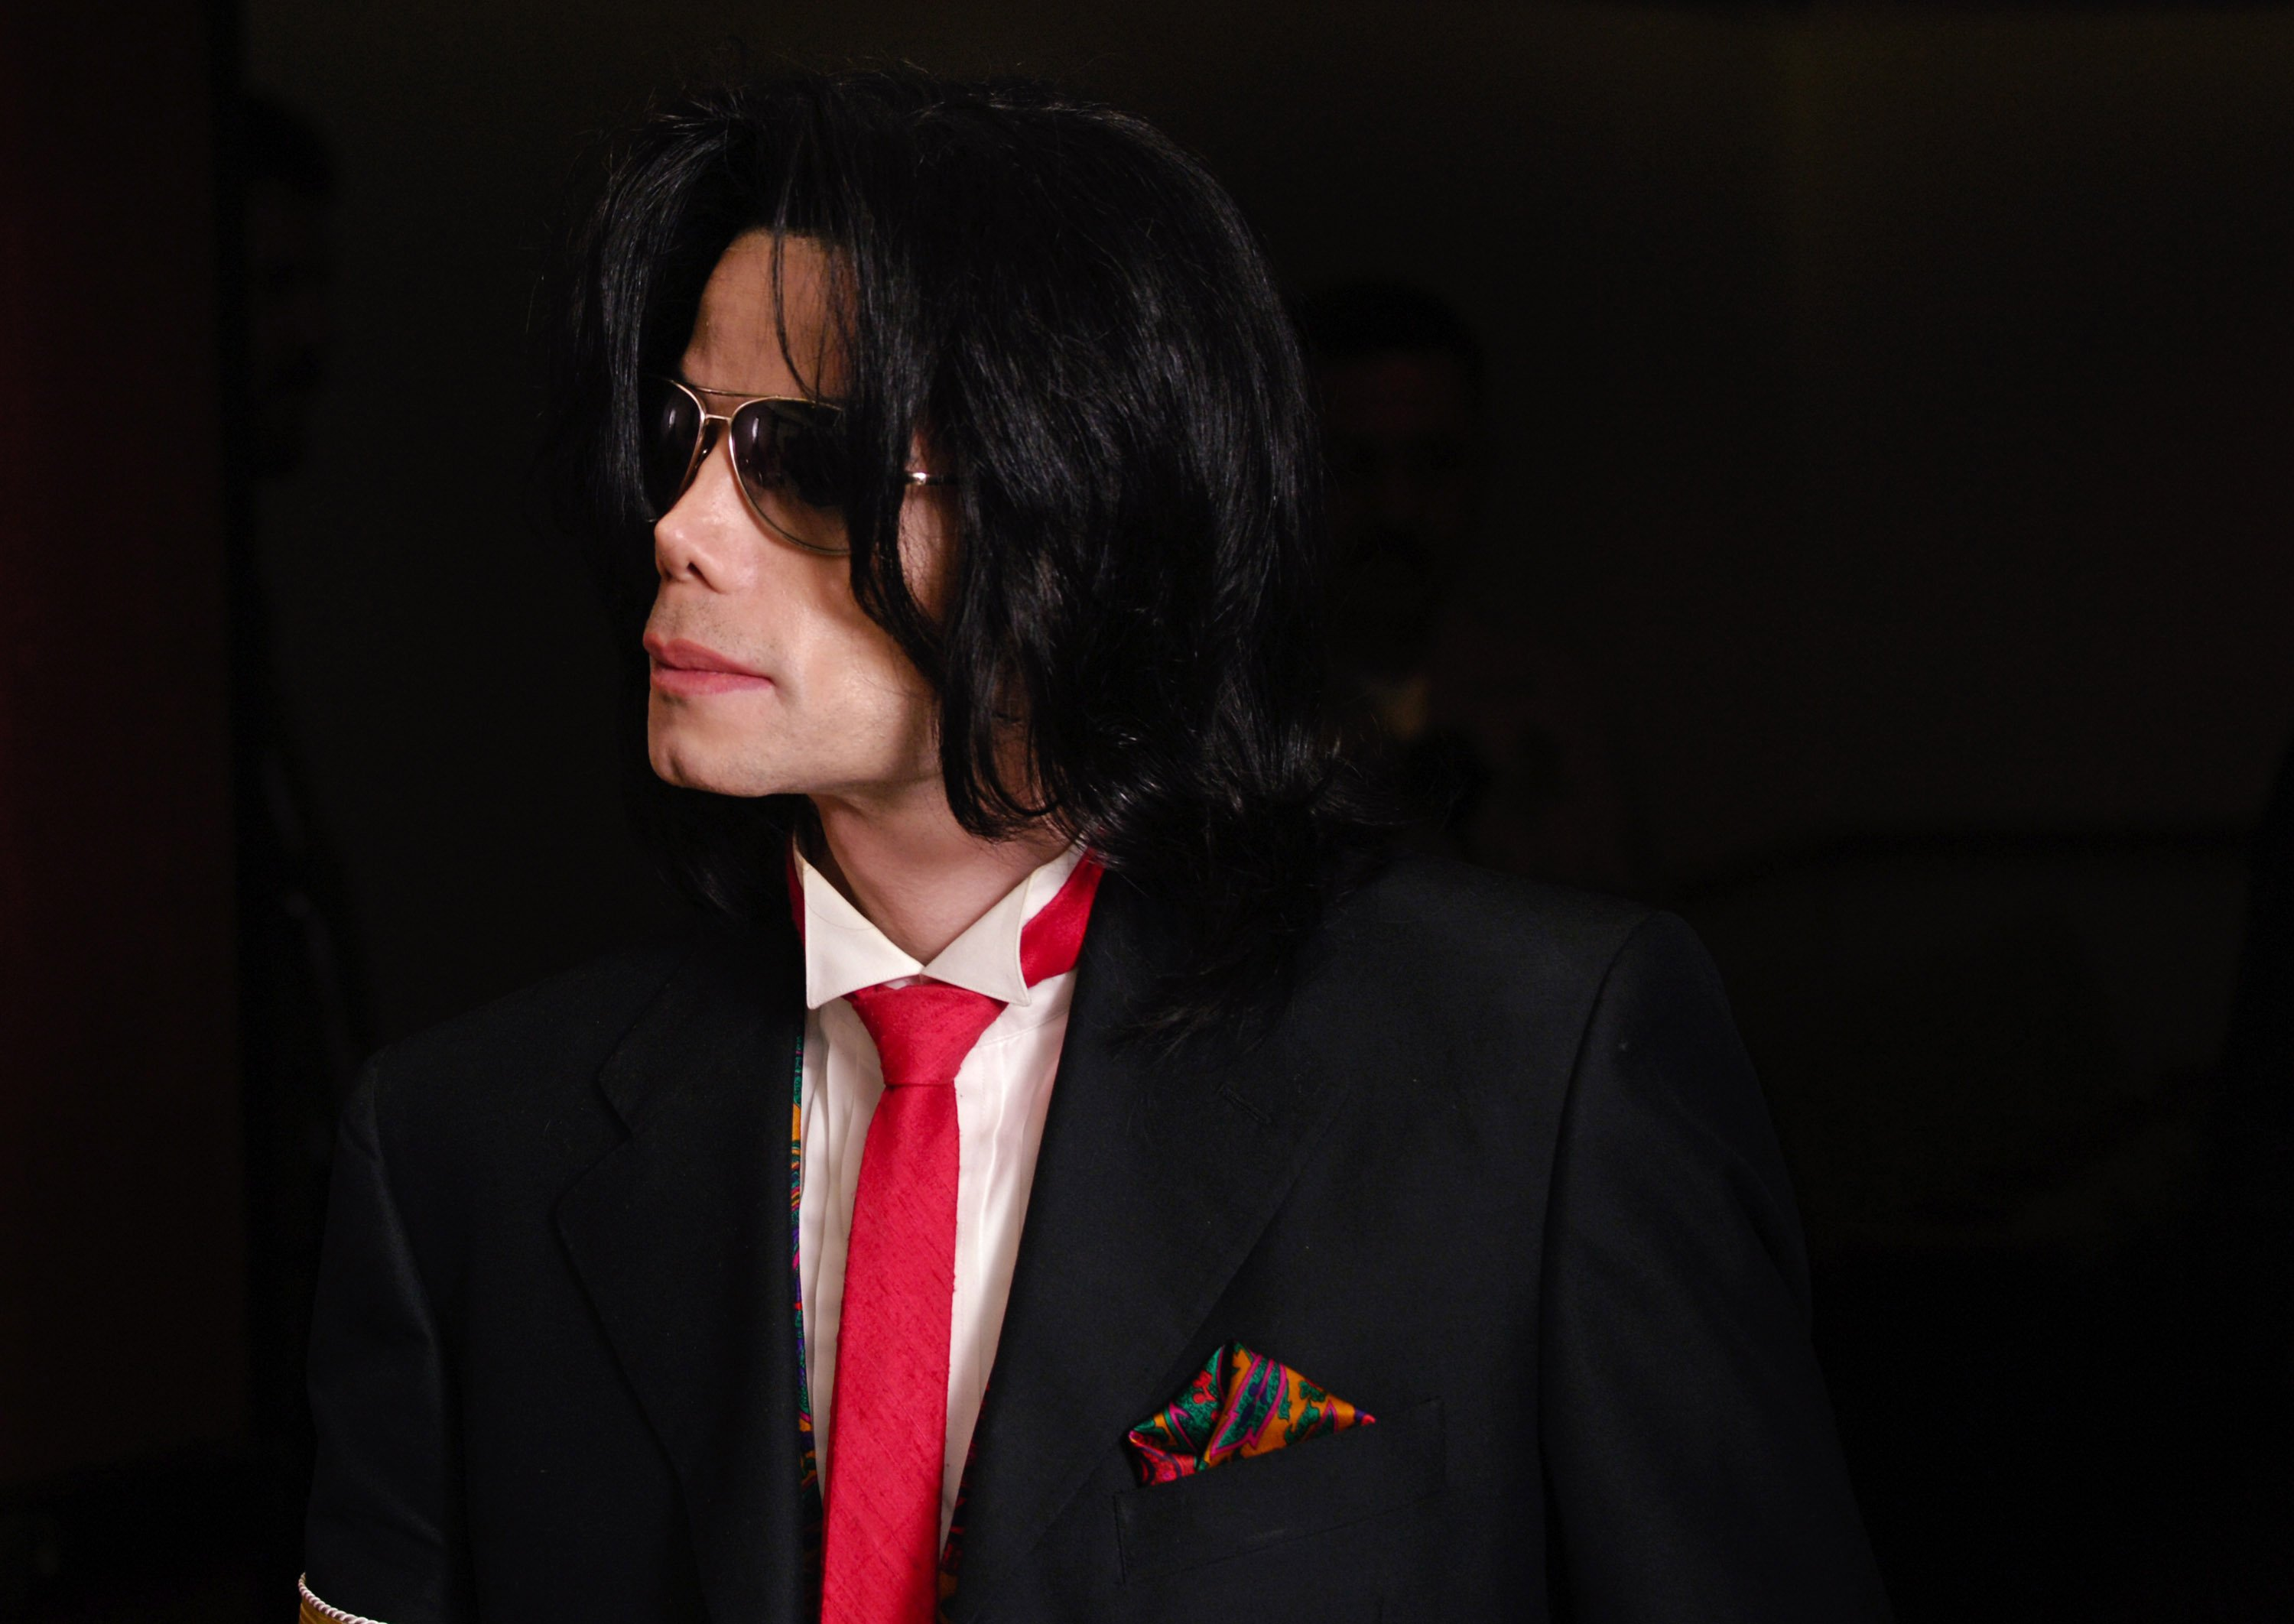 Michael Jackson leaves the courtroom following his trial in the Santa Barbara County Courthouse May 27, 2005 | Photo: GettyImages